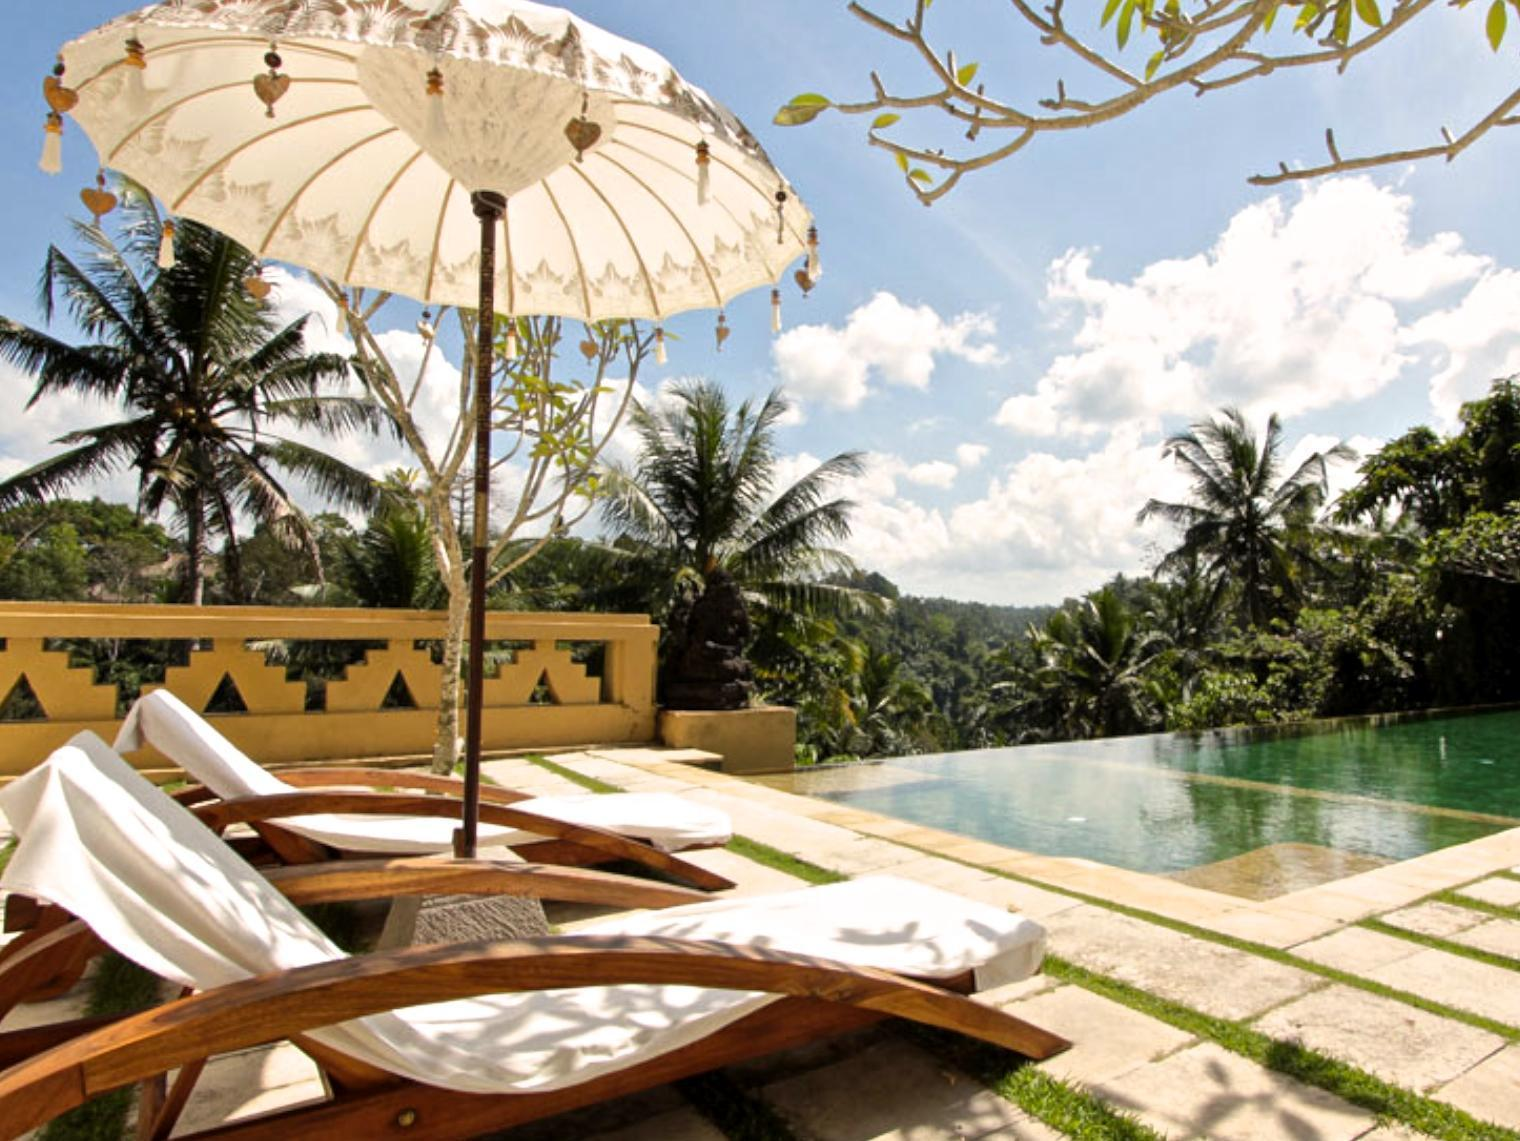 Bali Bliss Resort & Spa Ubud